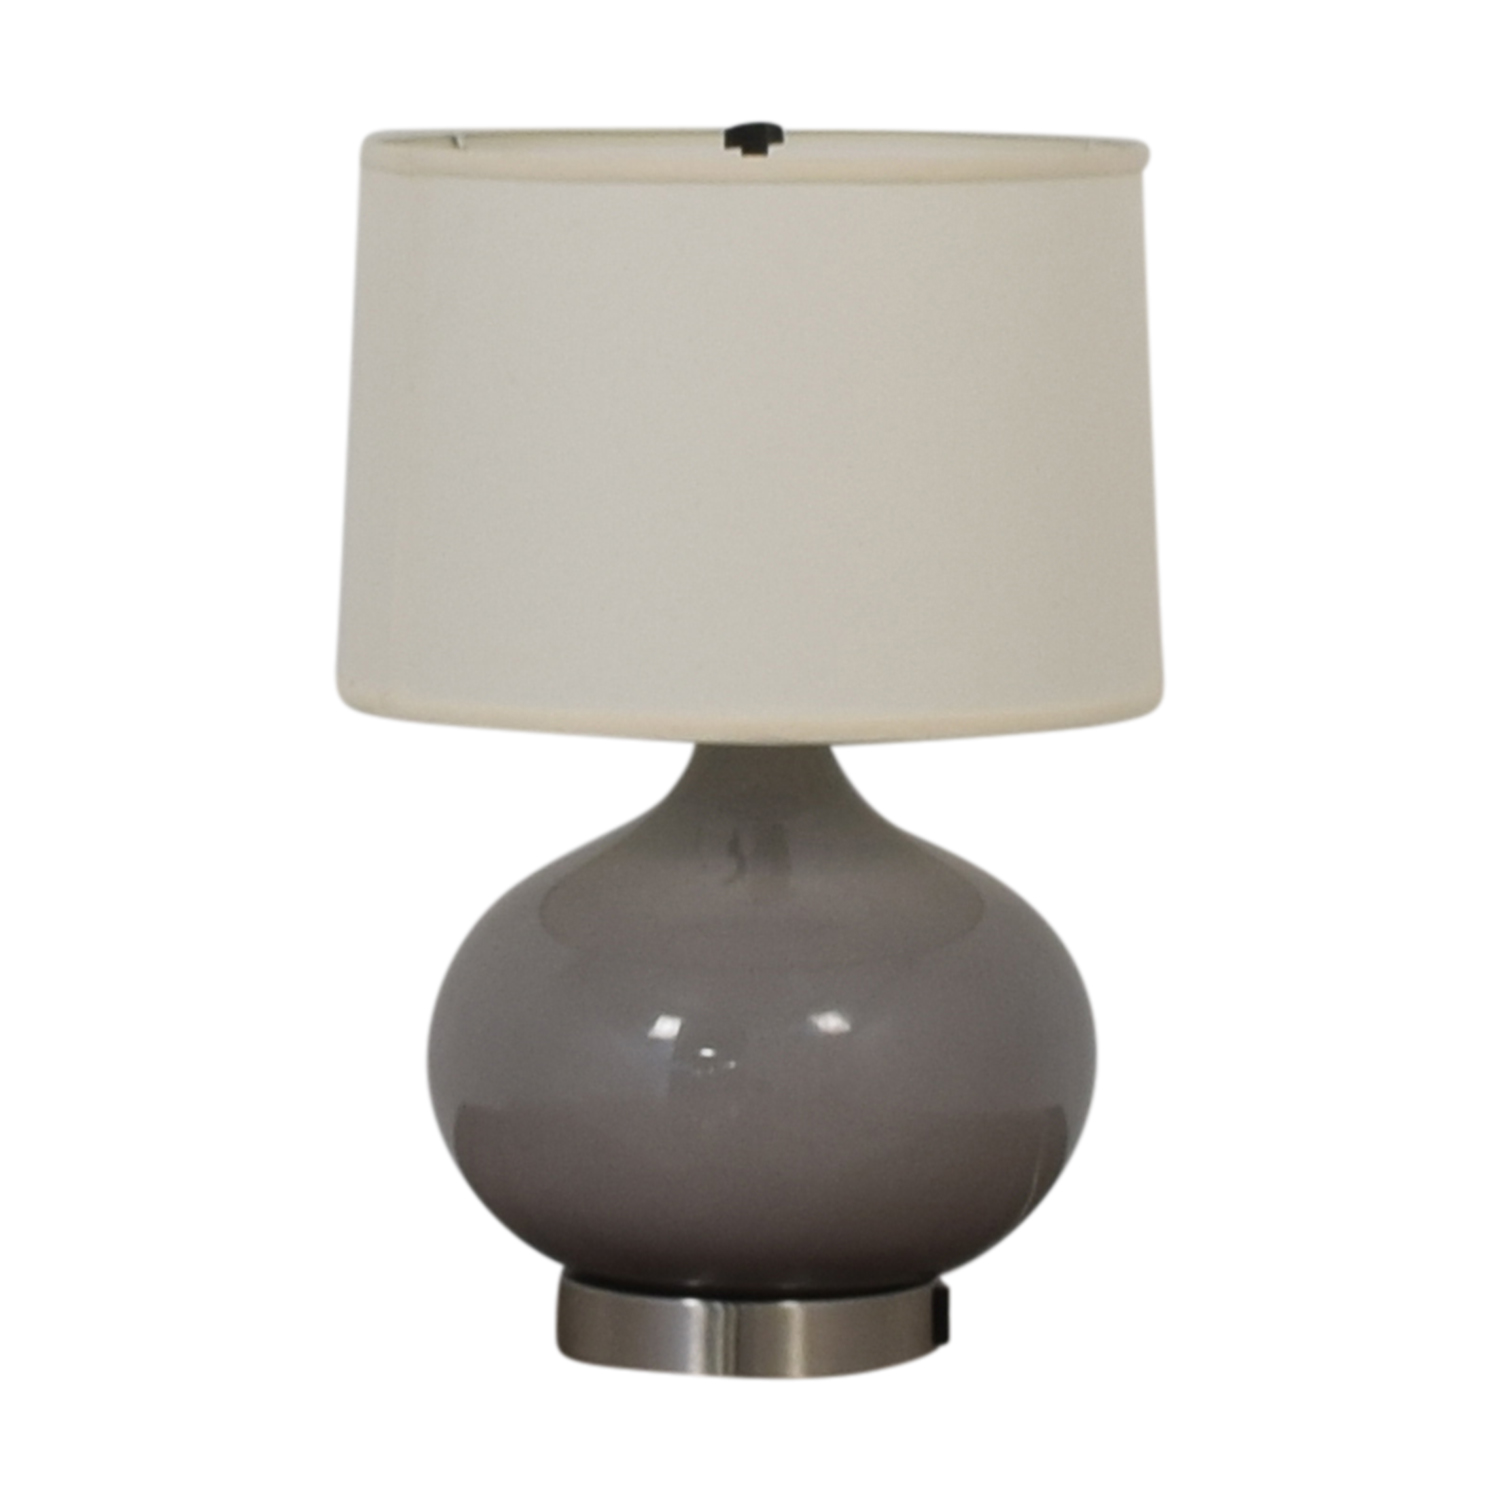 Crate & Barrel Spectrum Large Table Lamp sale